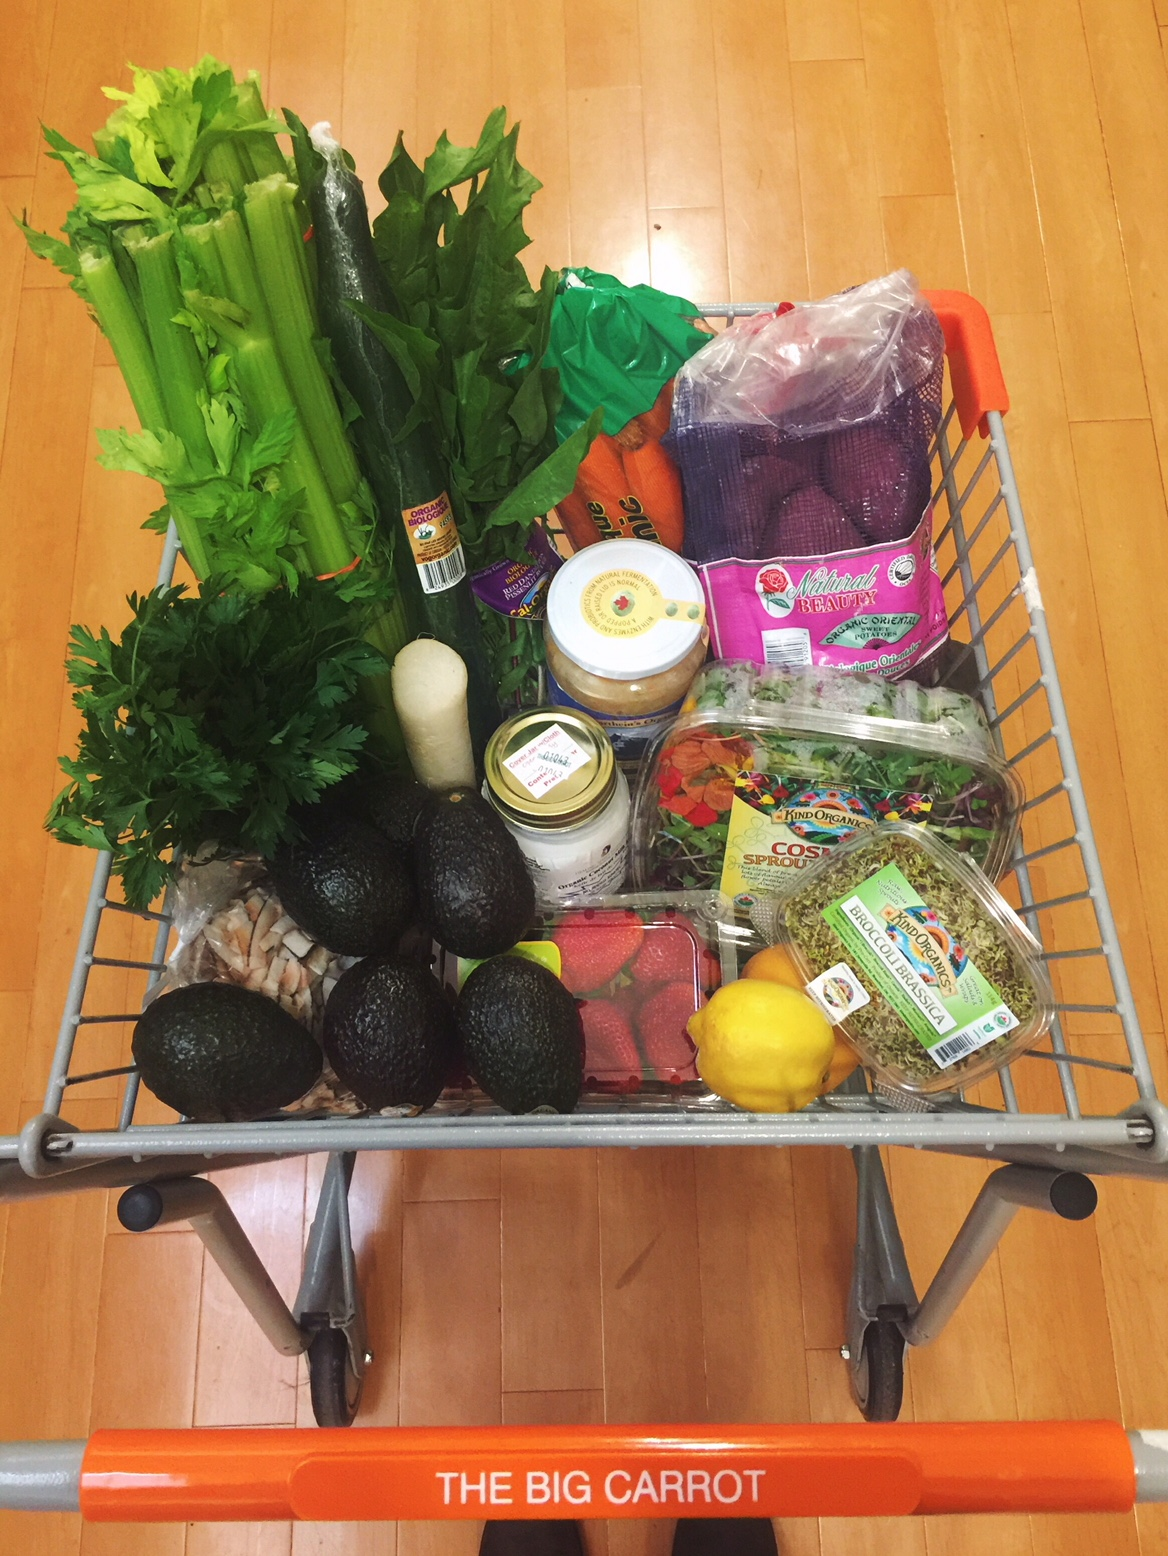 Grocery shopping whilst 236 hours deep into a water fast is my newest favorite hobby... seriously, you gotta try it.